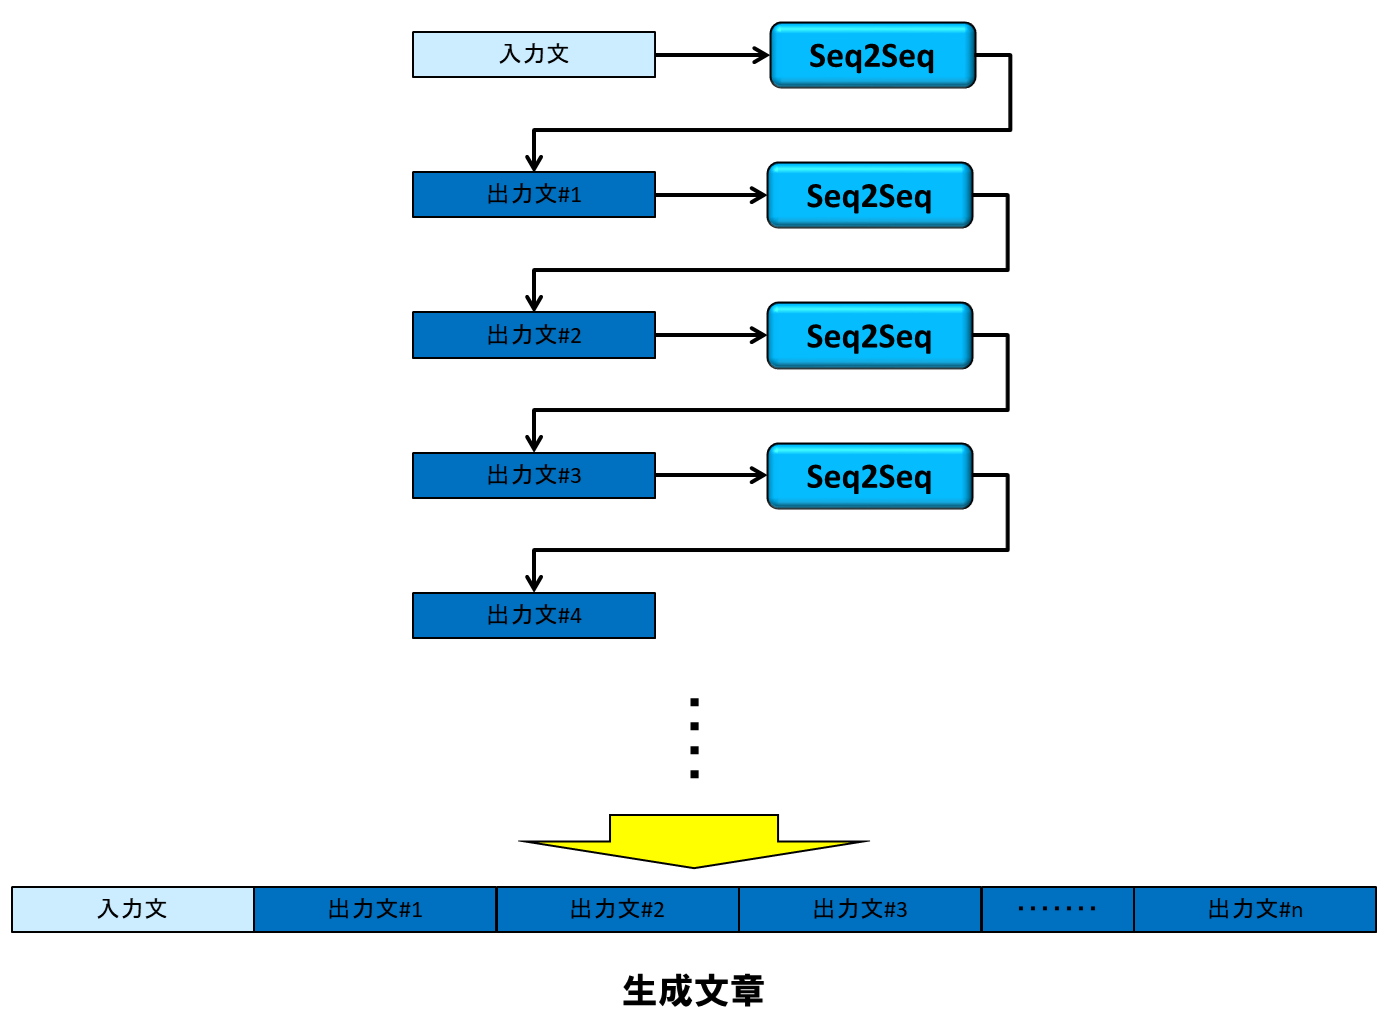 fig20190614_02.png